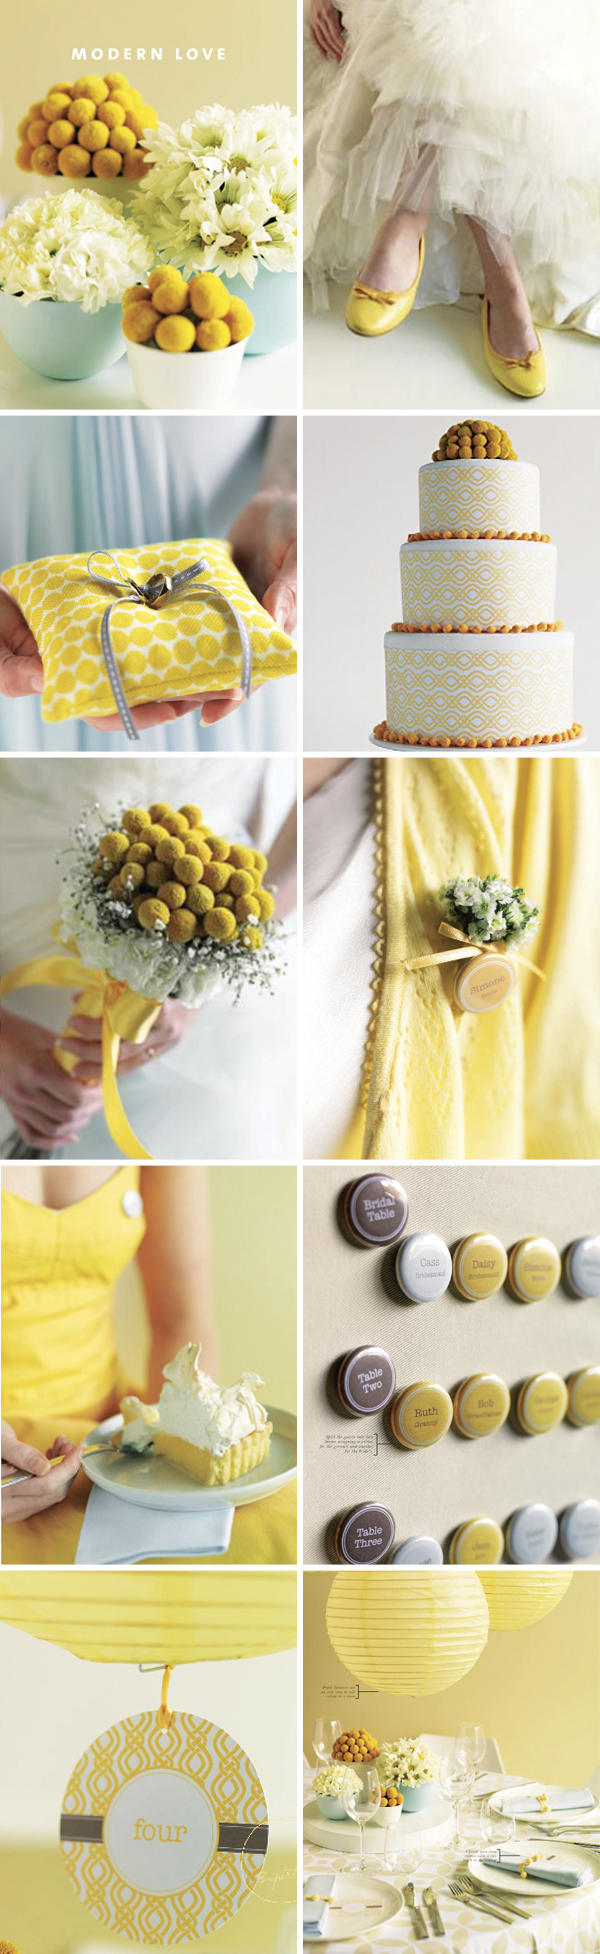 Wedding decorations yellow and gray  Yellow Wedding Ideas  Once Wed  wedded bliss  Pinterest  Wedding